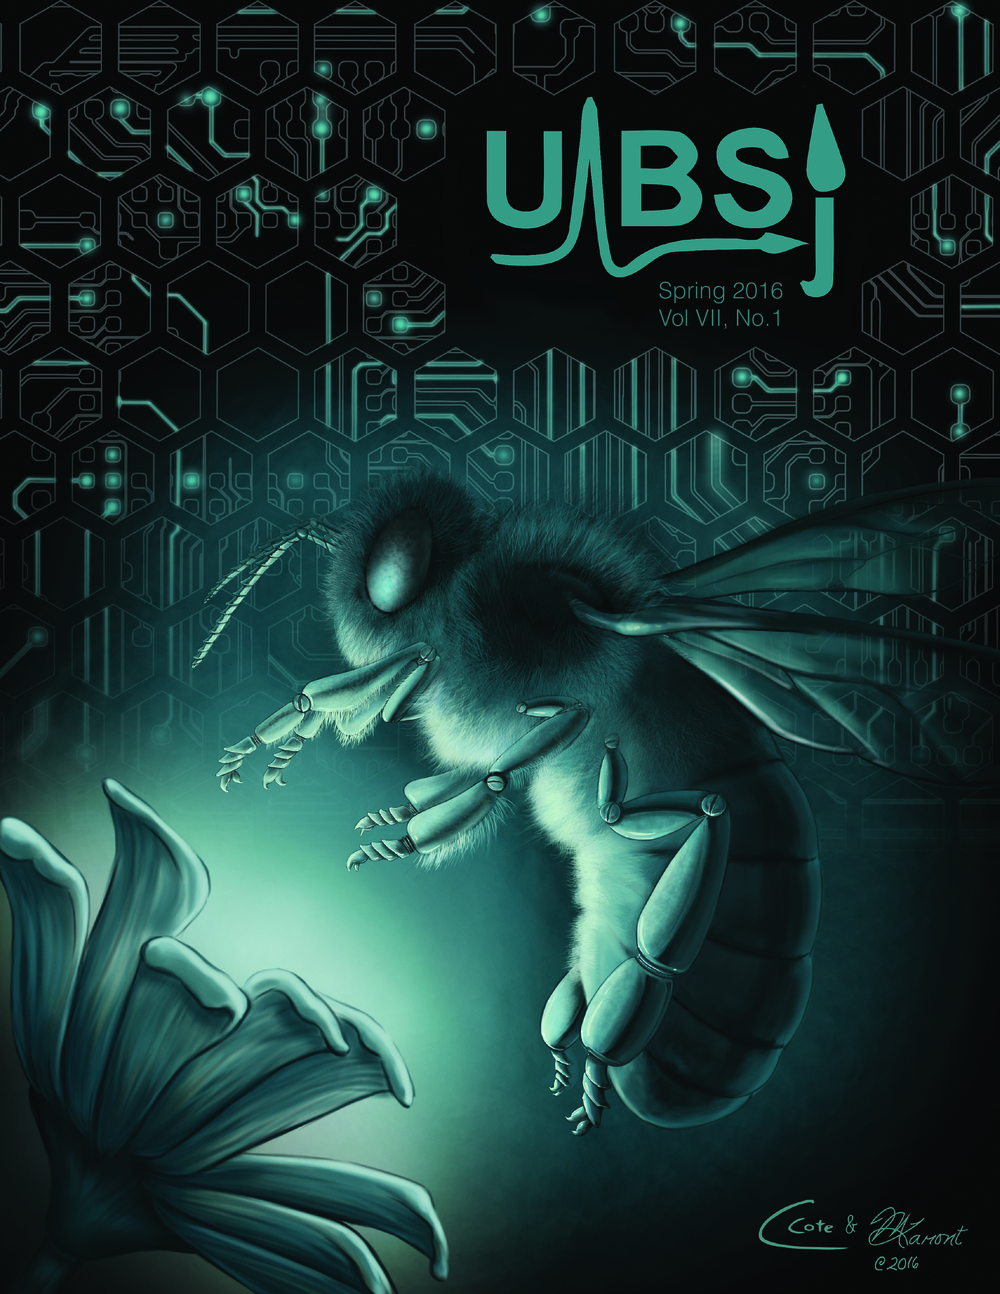 UBSJ 2016 Cover